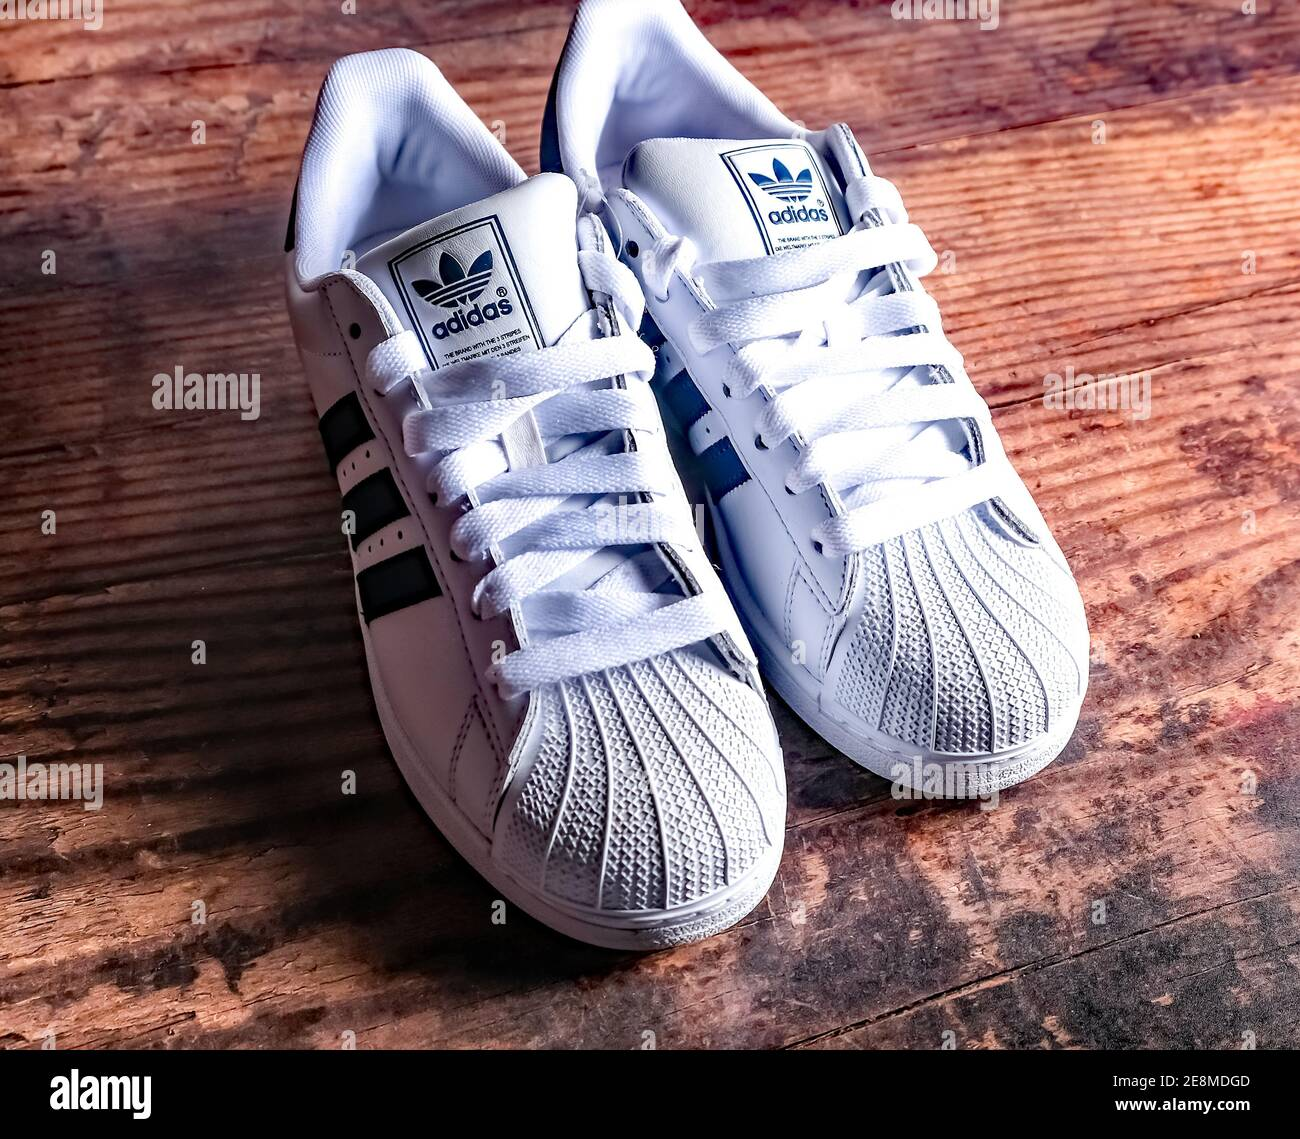 Page 2 - Adidas Trainers High Resolution Stock Photography and ...